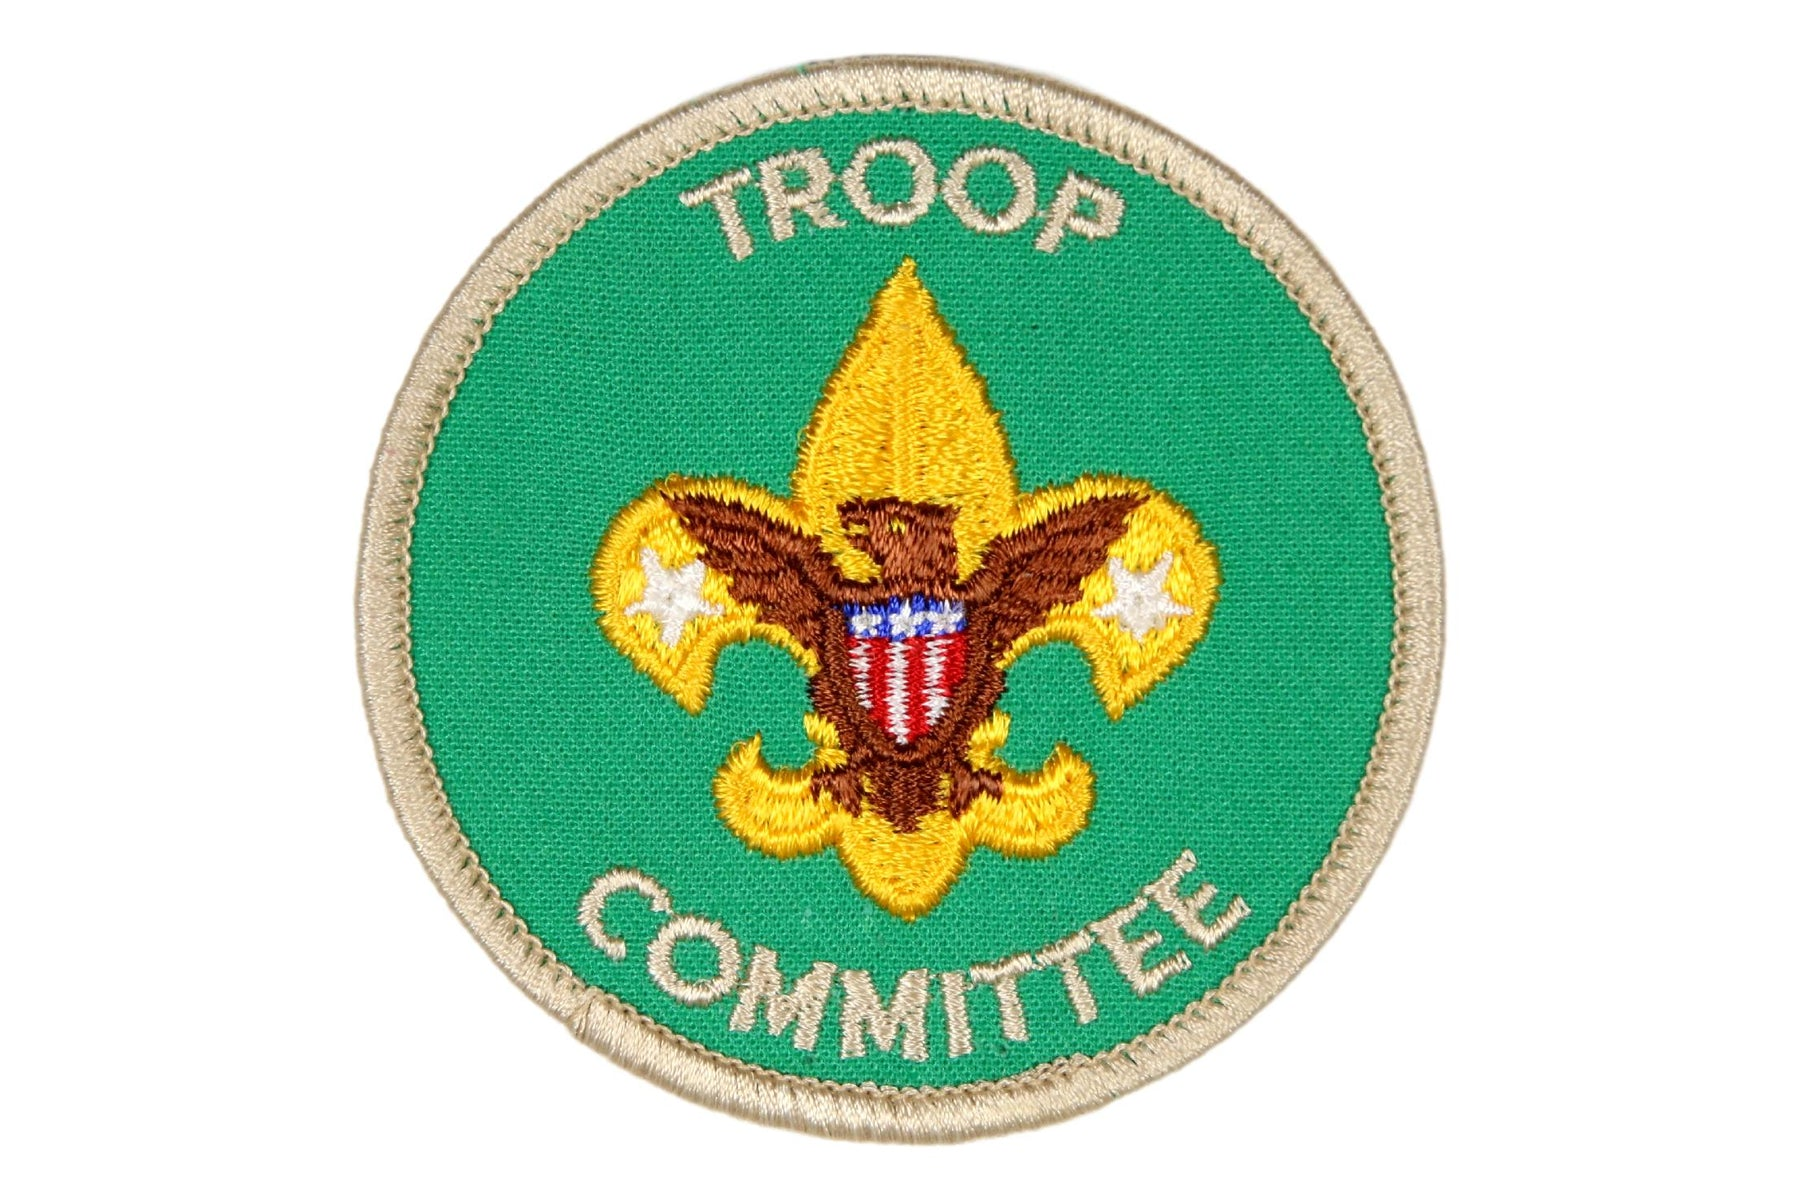 Troop Committee Patch 1970s Clear Plastic Back